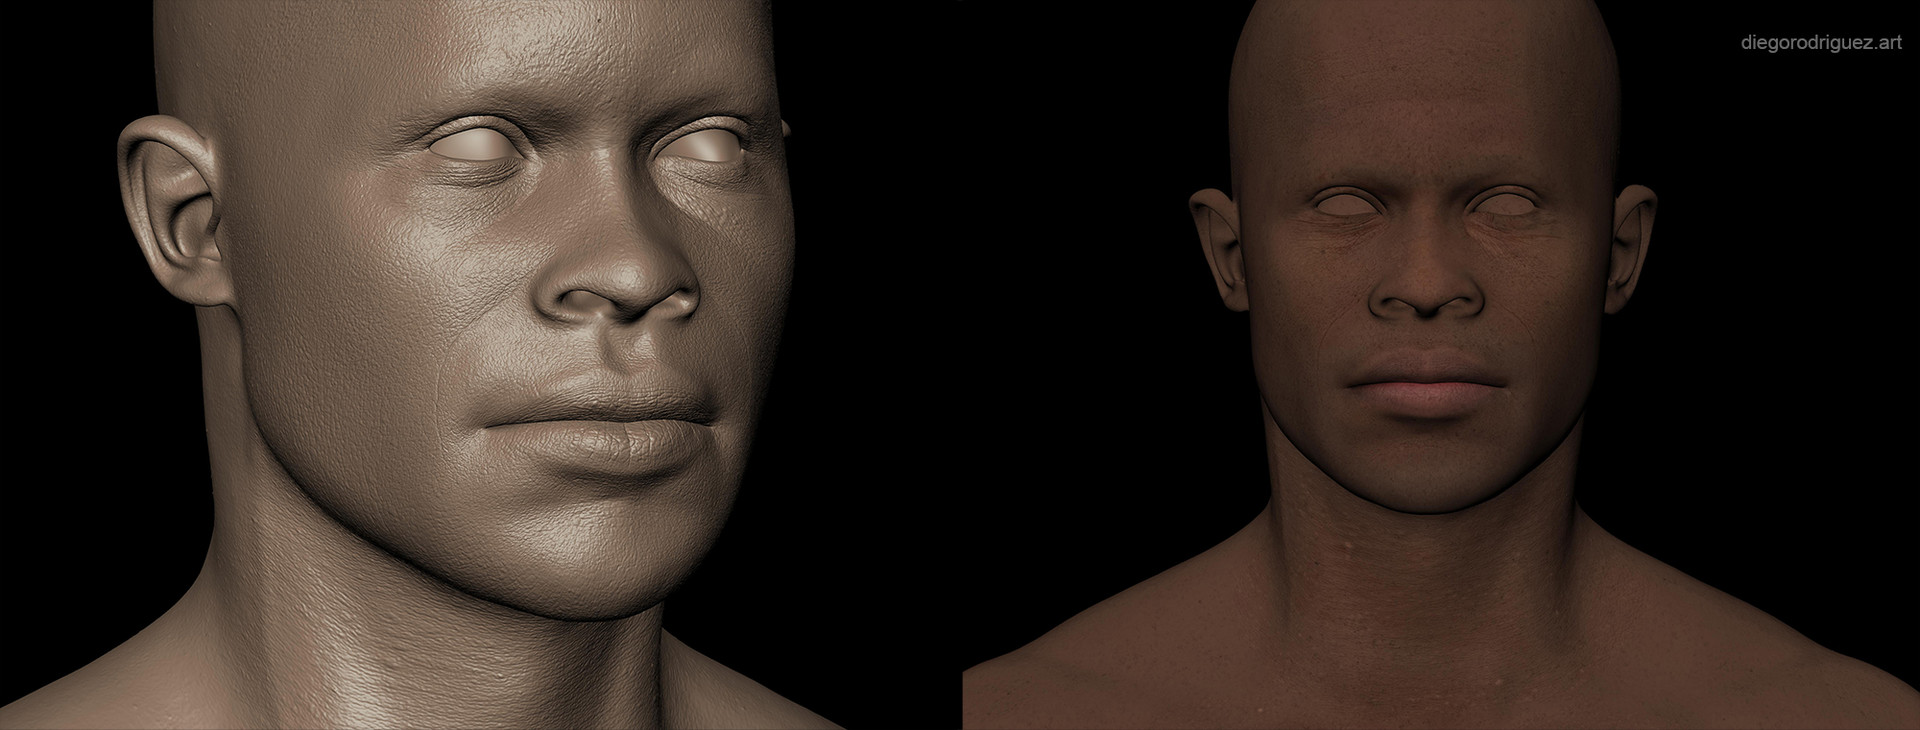 Skin textures created in Mudbox. I've used texturing xyz maps for the displacement information and a combination of cross polarized textures and hand painting for the base color.